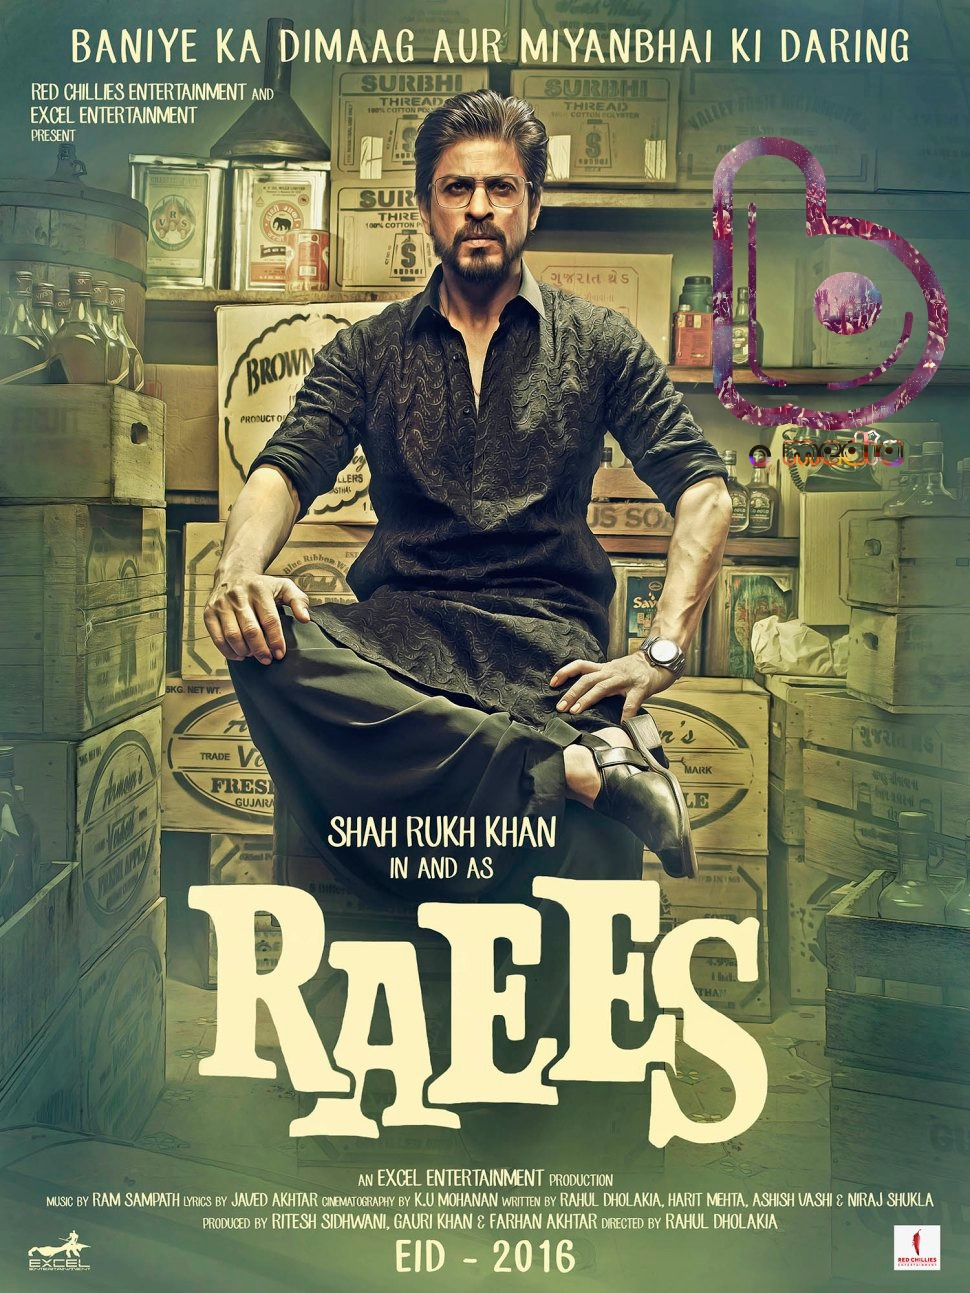 Most Awaited Bollywood Movies releasing in 2016 - Raees